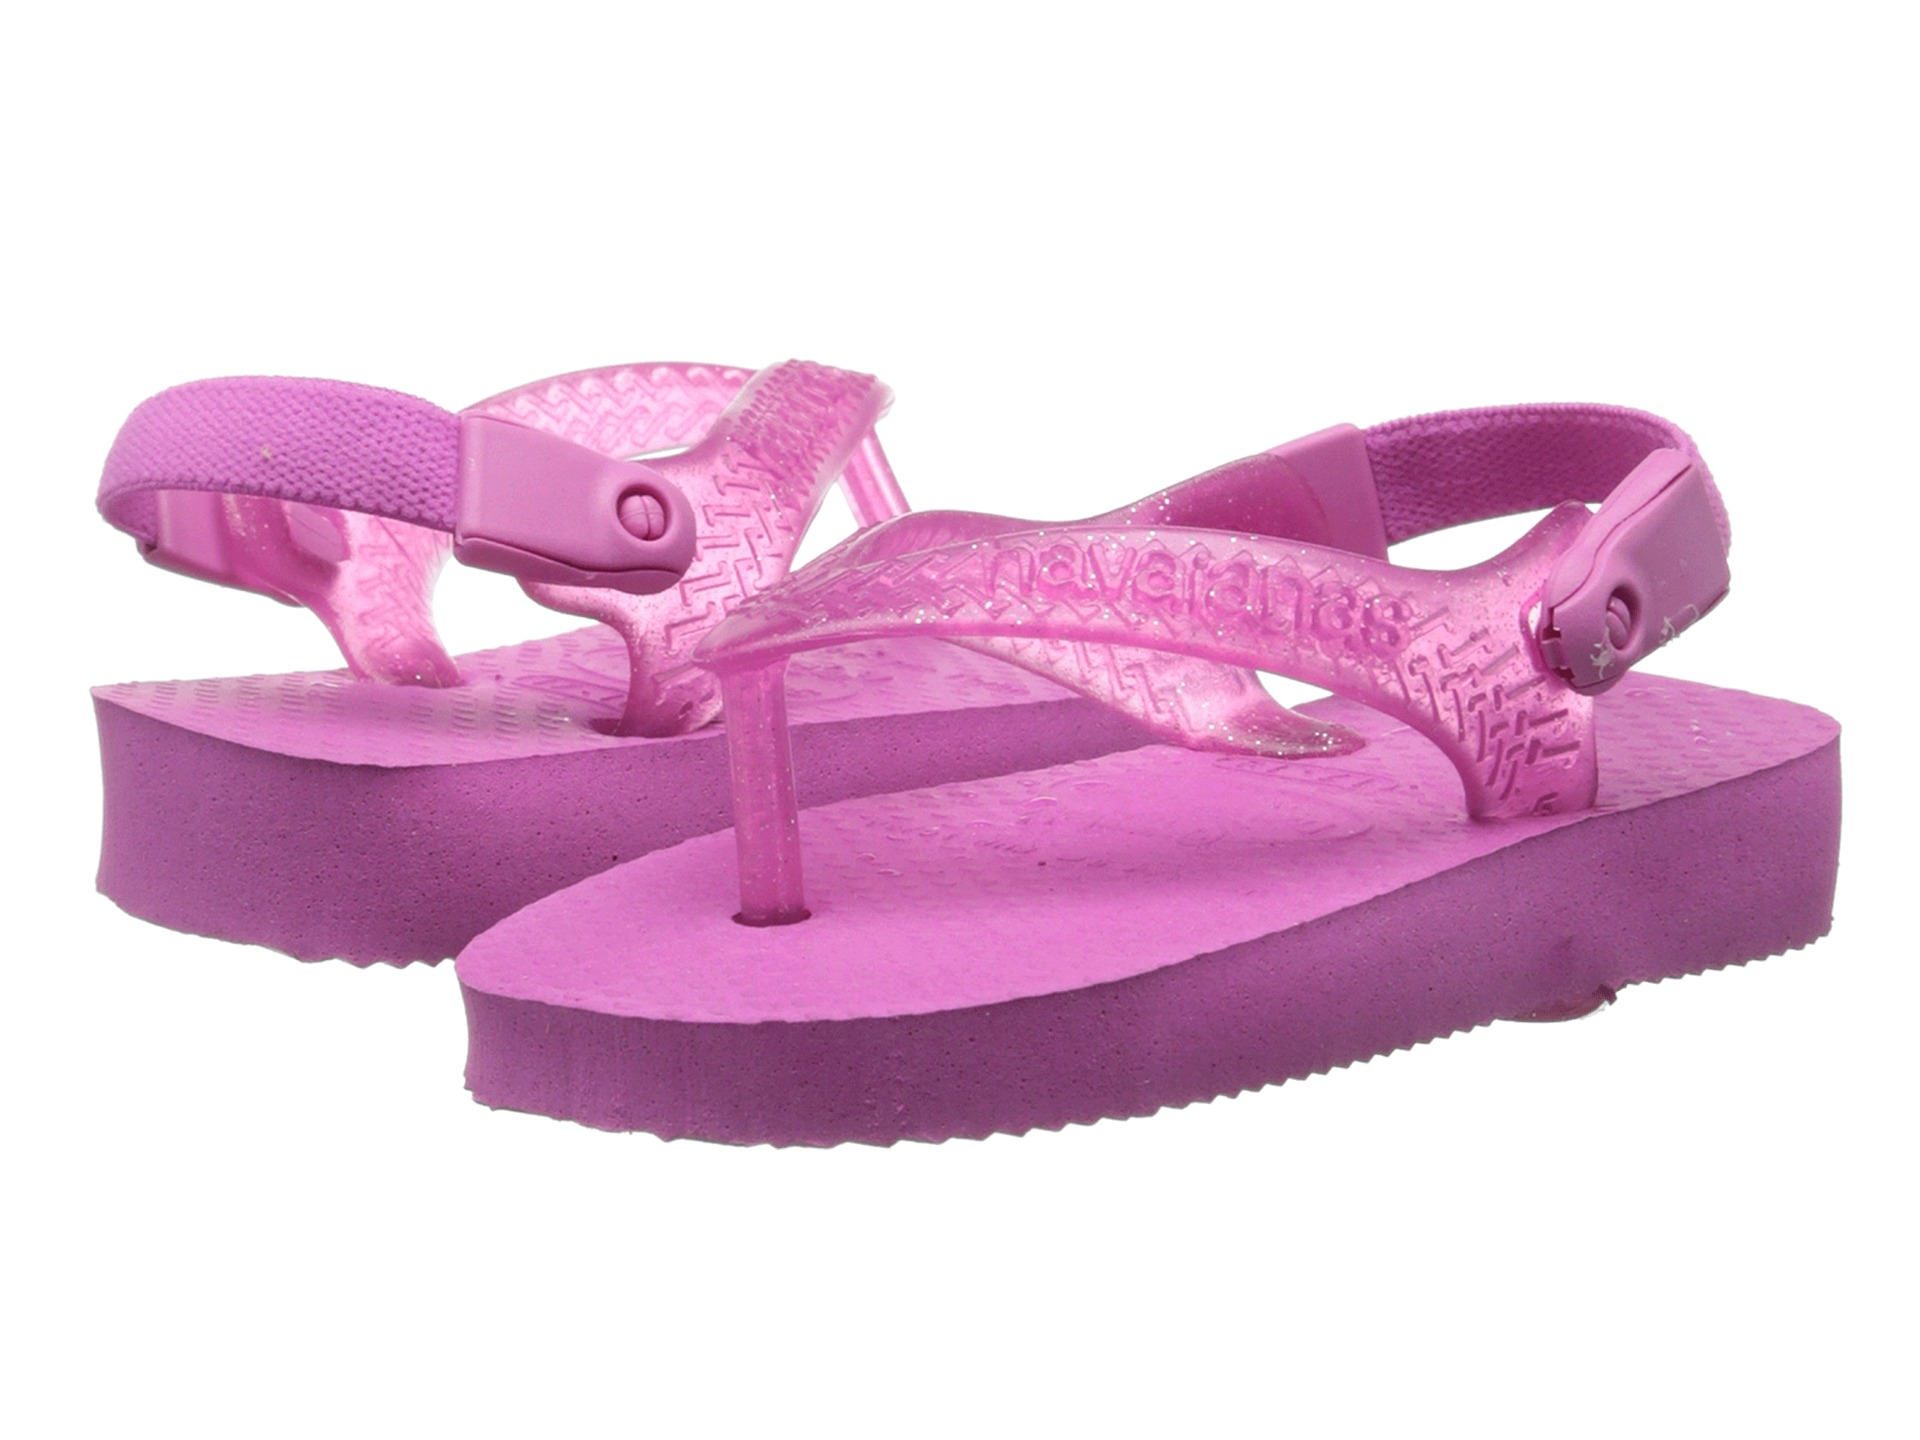 Shop for kids flip flops online at Target. Free shipping on purchases over $35 and save 5% every day with your Target REDcard.